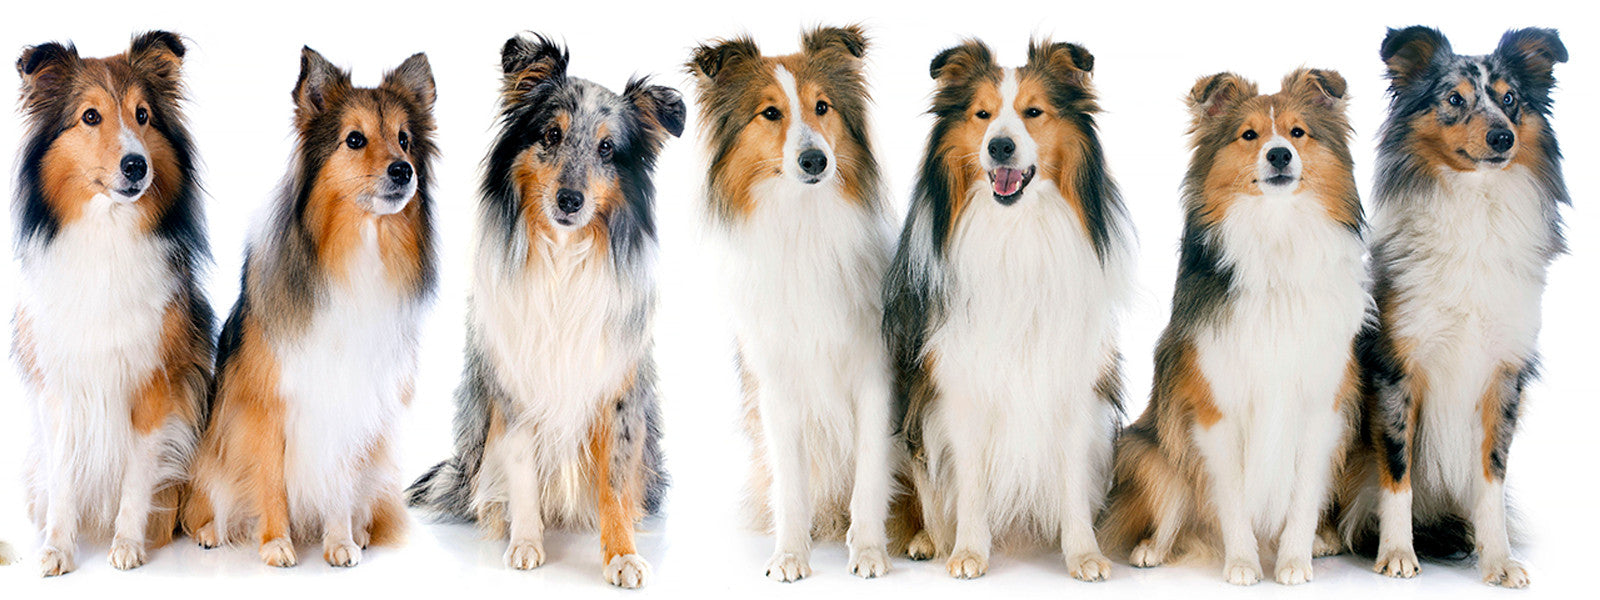 Shetland Sheepdog colors